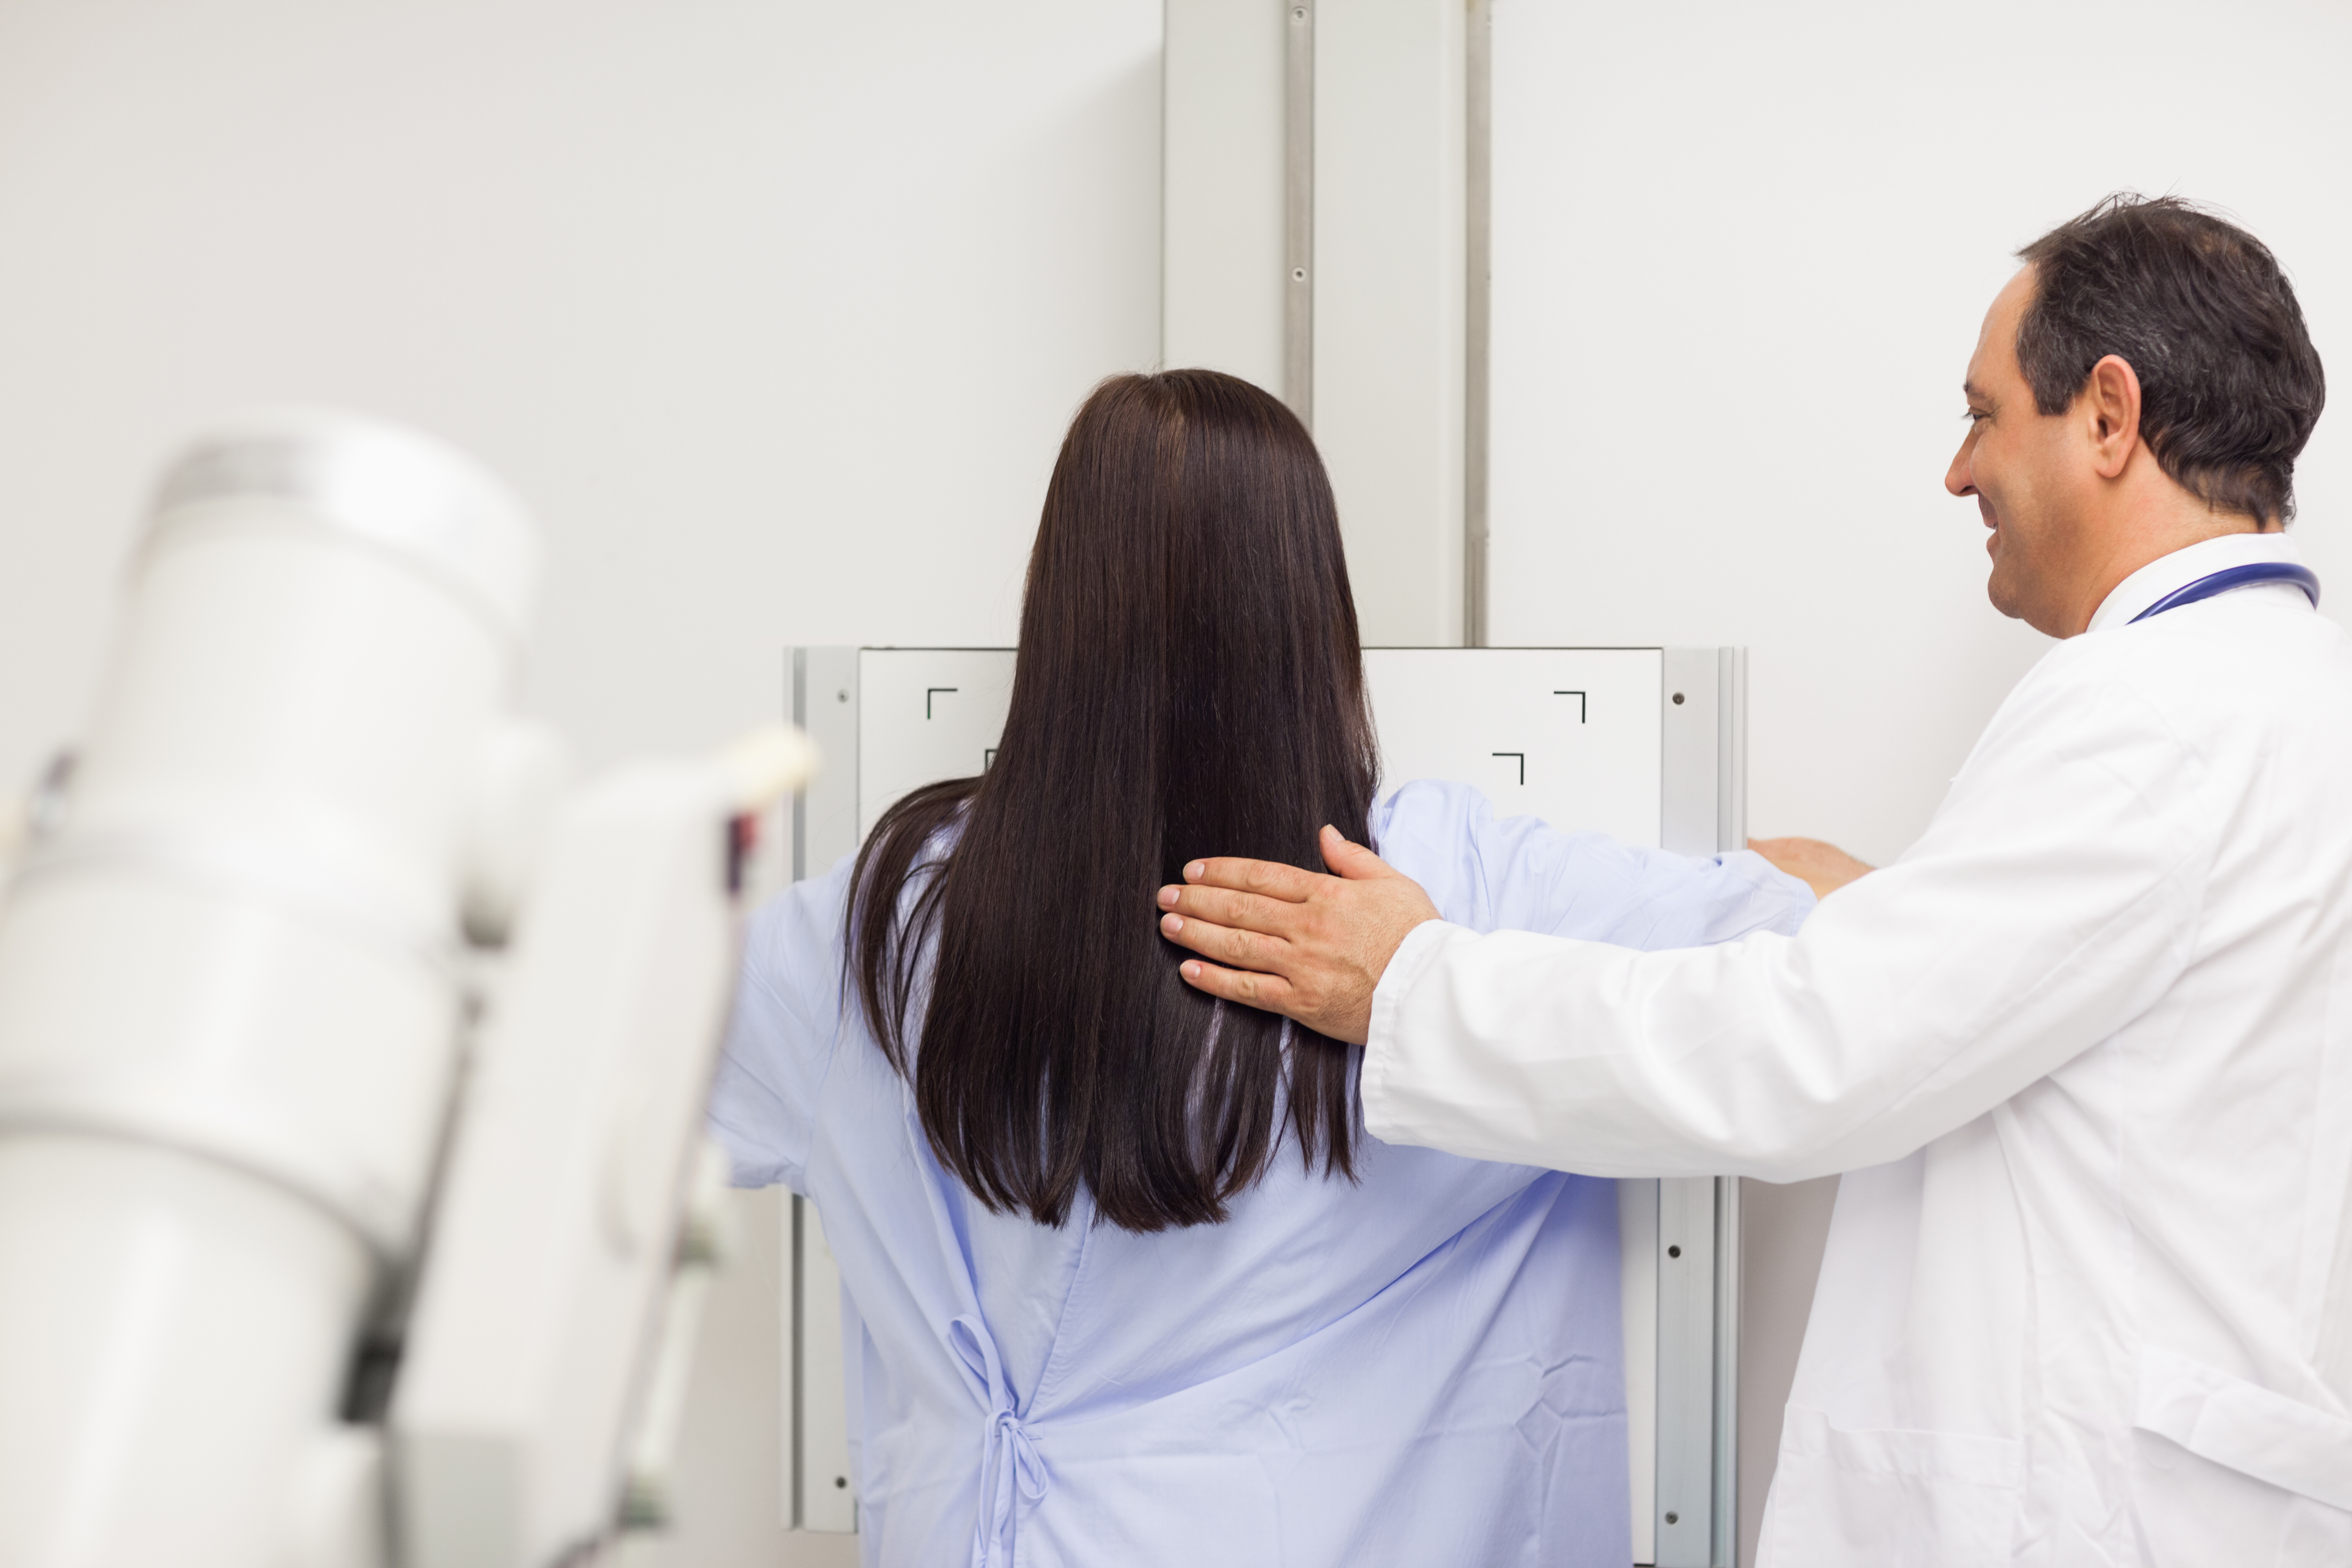 Increased Screening Has Led to Breast Cancer Overdiagnosis